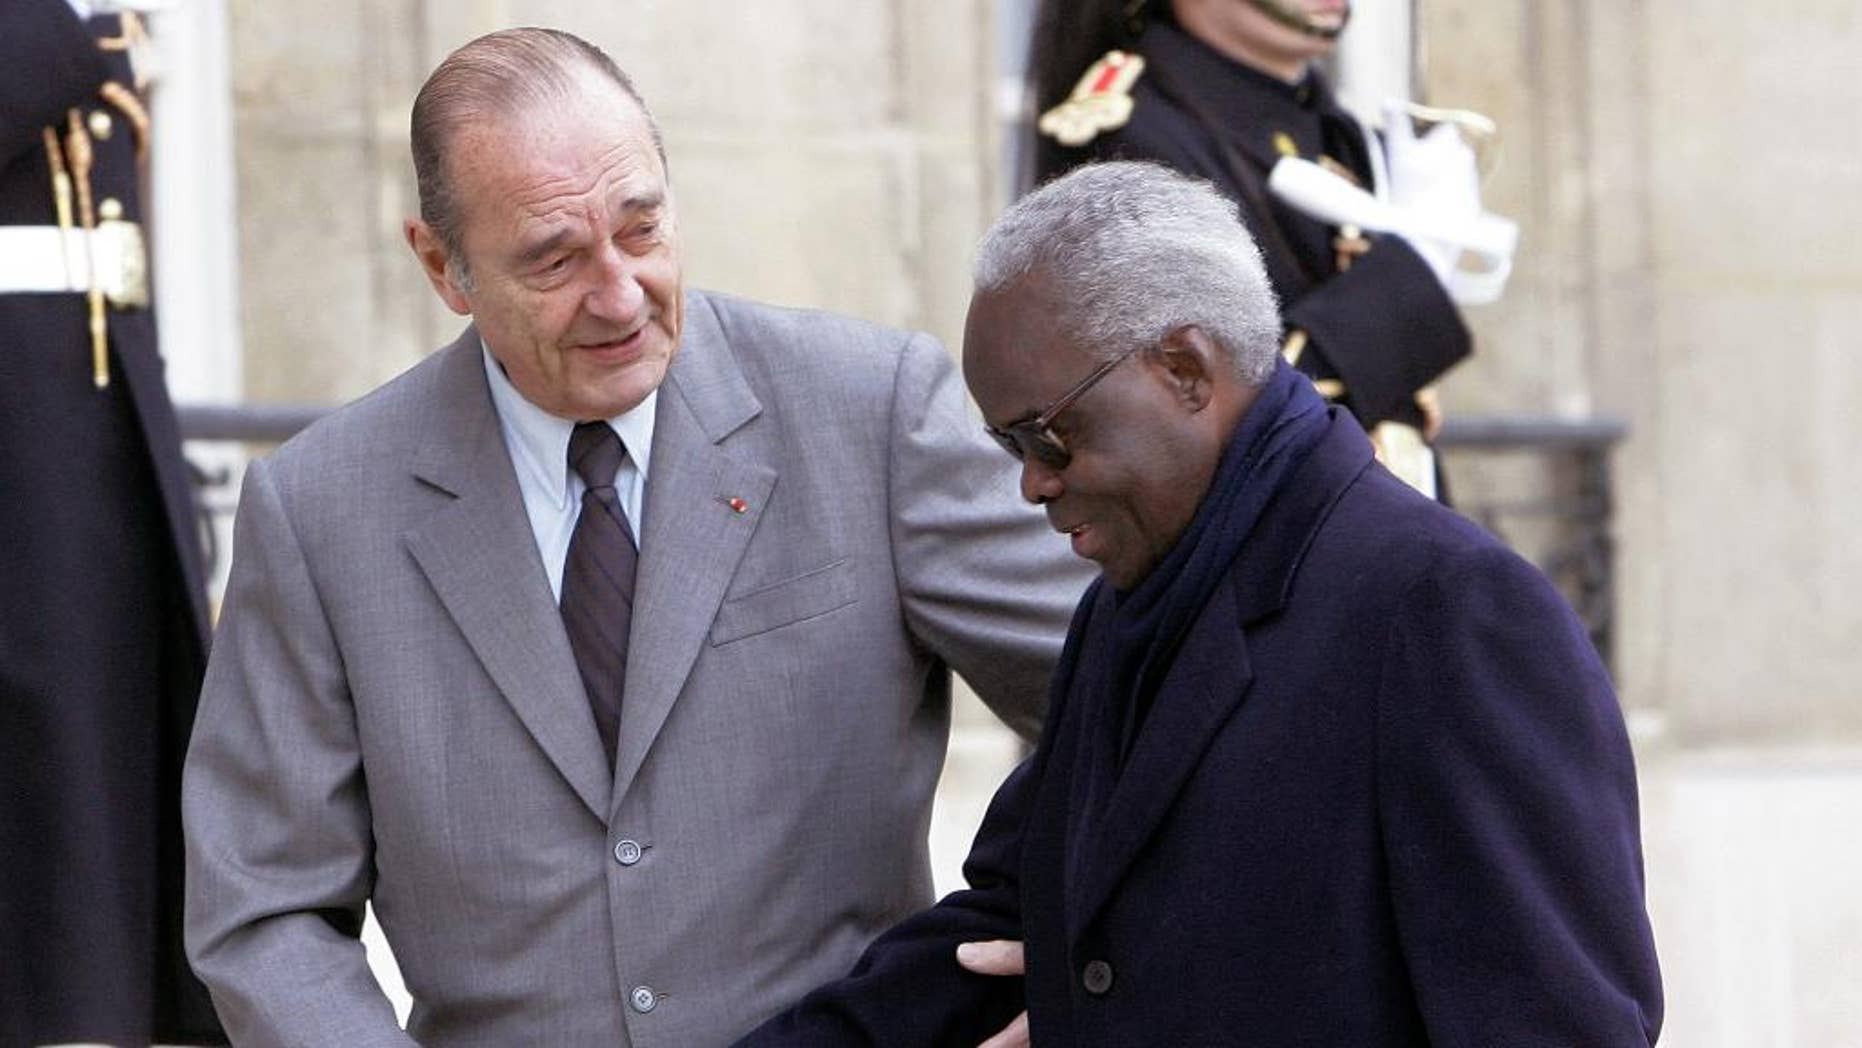 FILE-In this file photo taken on Friday, Nov. 25, 2005, French President Jacques Chirac, left, welcomes President of Benin,  Mathieu Kerekou, upon his arrival at the Elysee Palace in Paris.  Benin's president says that former leader Mathieu Kerekou has died.  President Boni Yayi on Wednesday, Oct. 14, 2015, said Kerekou was a great man, and called for seven days of national mourning. He presented his condolences to the nation.(AP Photo/Michel Euler, FILE)